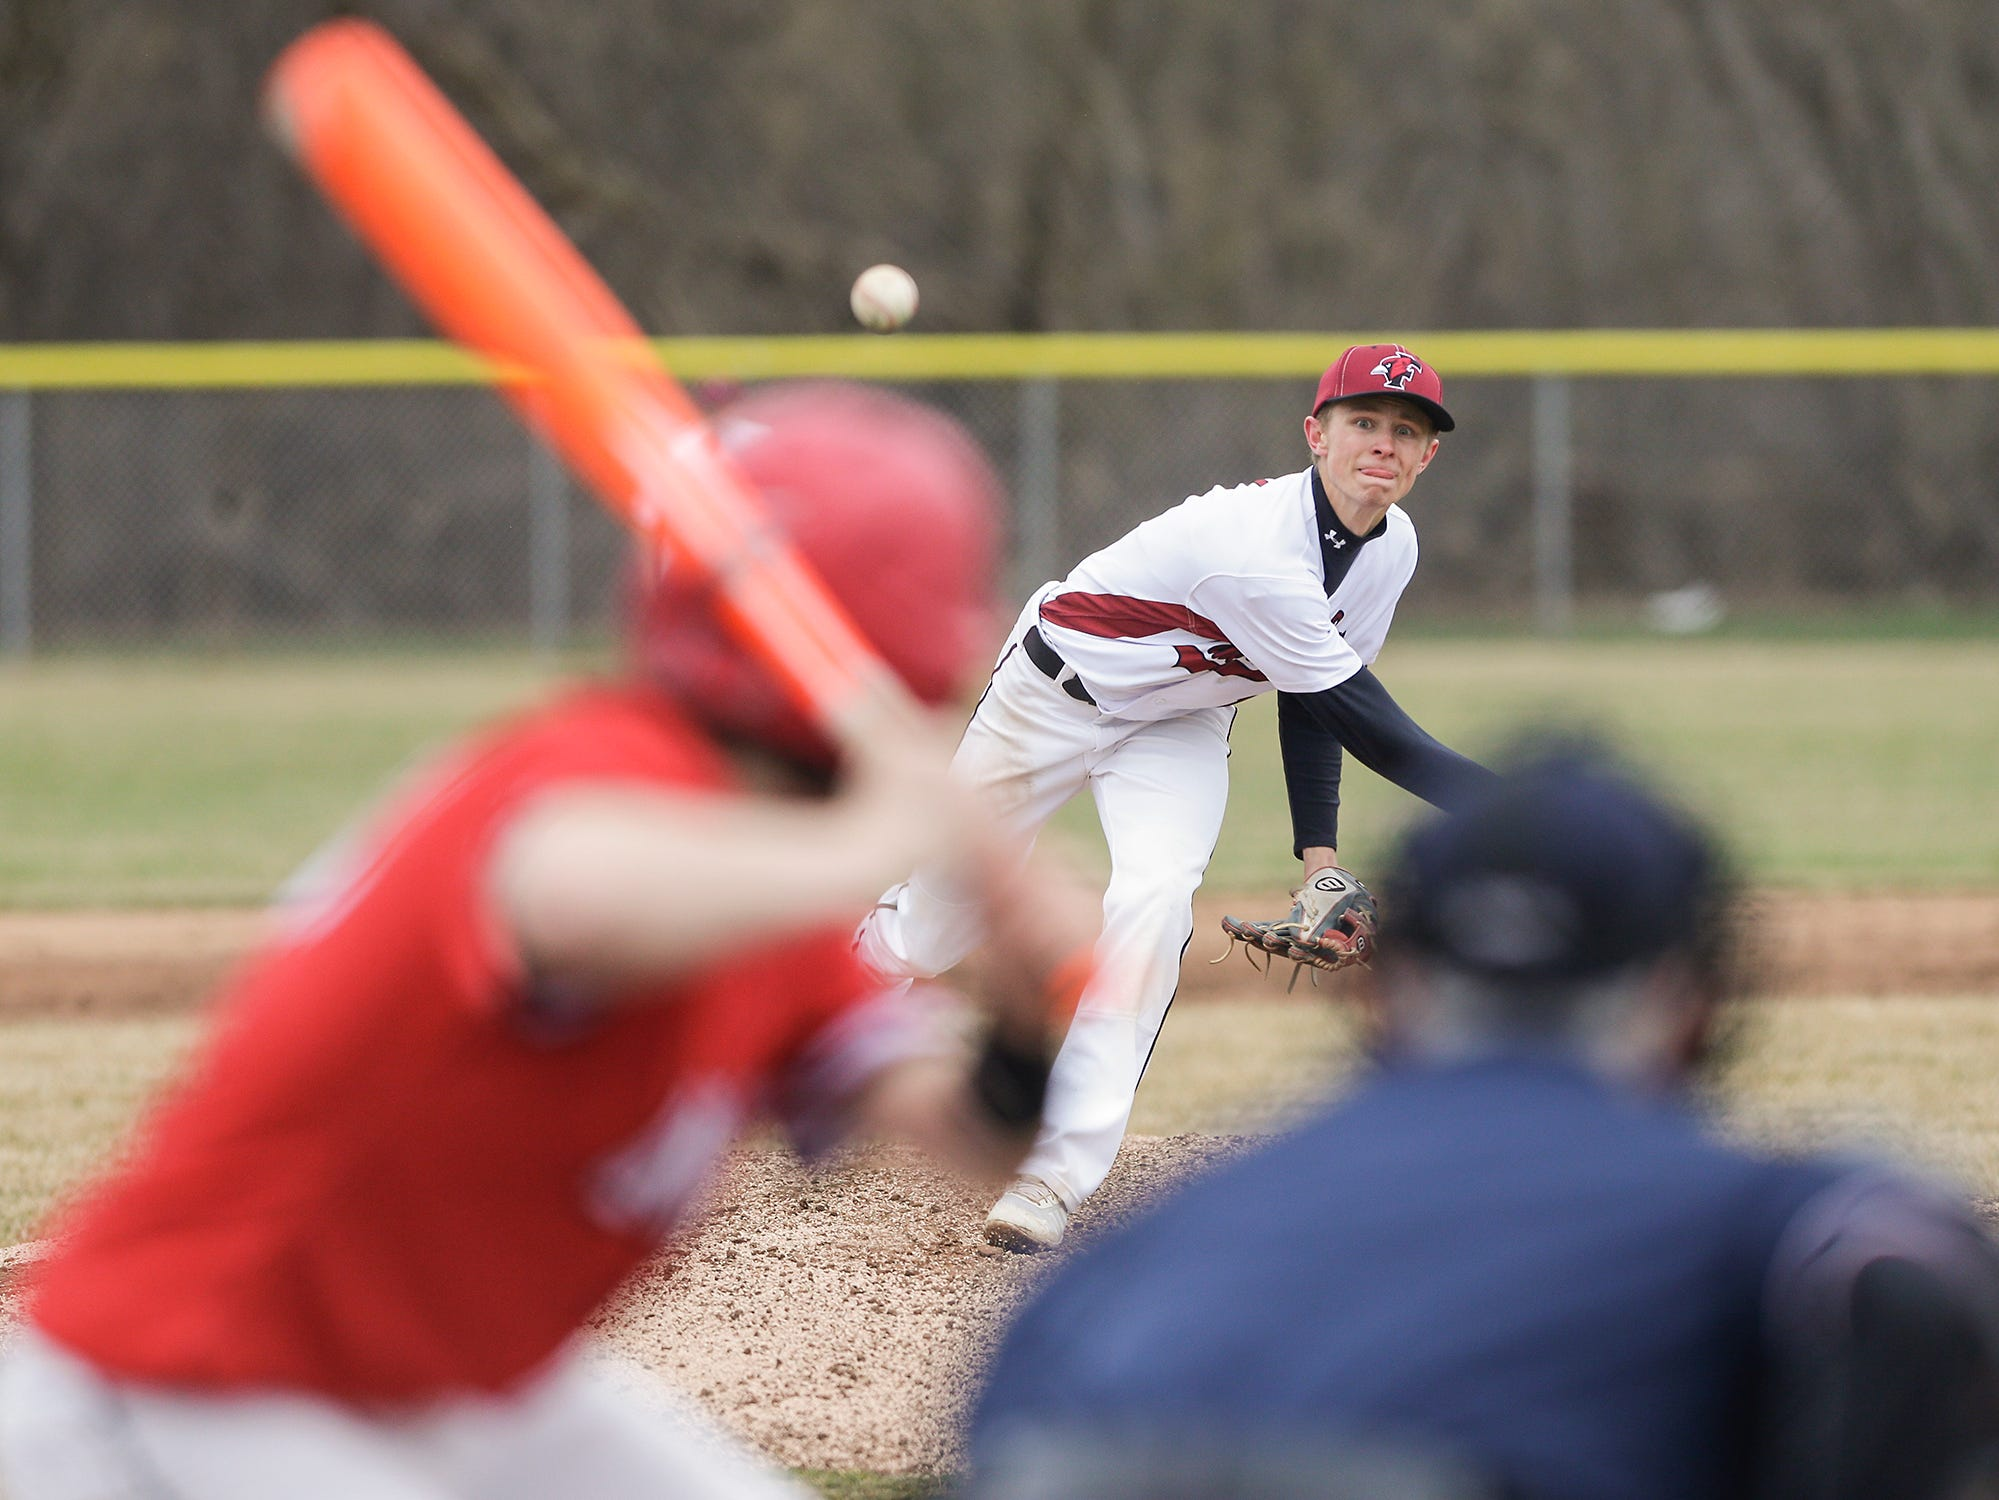 Fond du Lac High School baseball's Caden Krug pitches against Neenah High School during their game Thursday, April 18, 2019 in Fond du Lac, Wis. Doug Raflik/USA TODAY NETWORK-Wisconsin